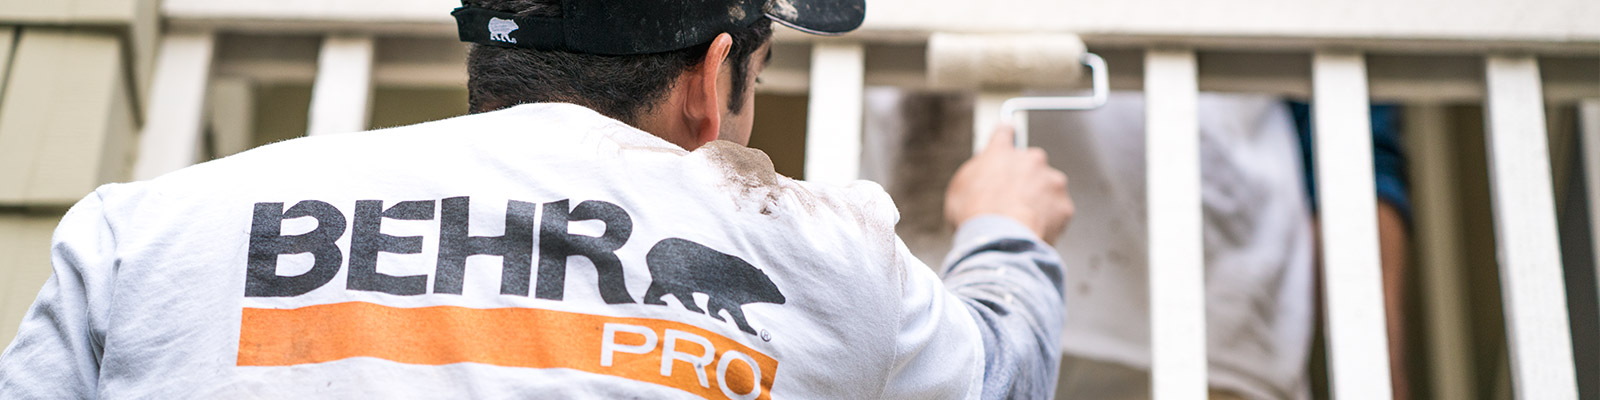 A close-up image of a back of a painting contractor who is painting with a roller with the logo of BEHR PRO imprinted on the shirt..